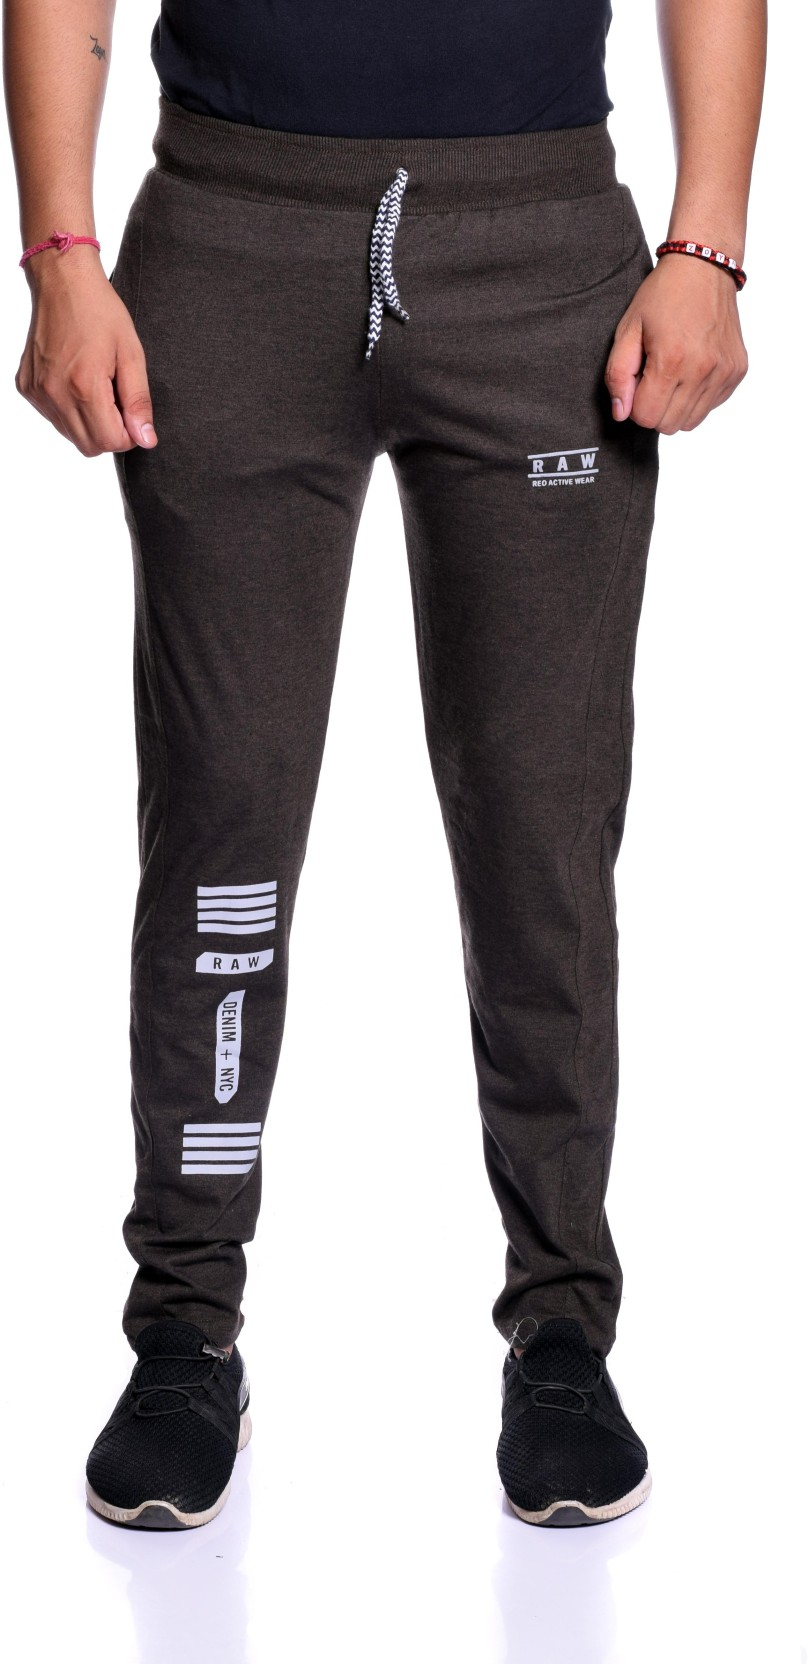 04134c4c89 Reo Active Wear (RAW) Striped Men Brown Track Pants - Buy Reo Active ...